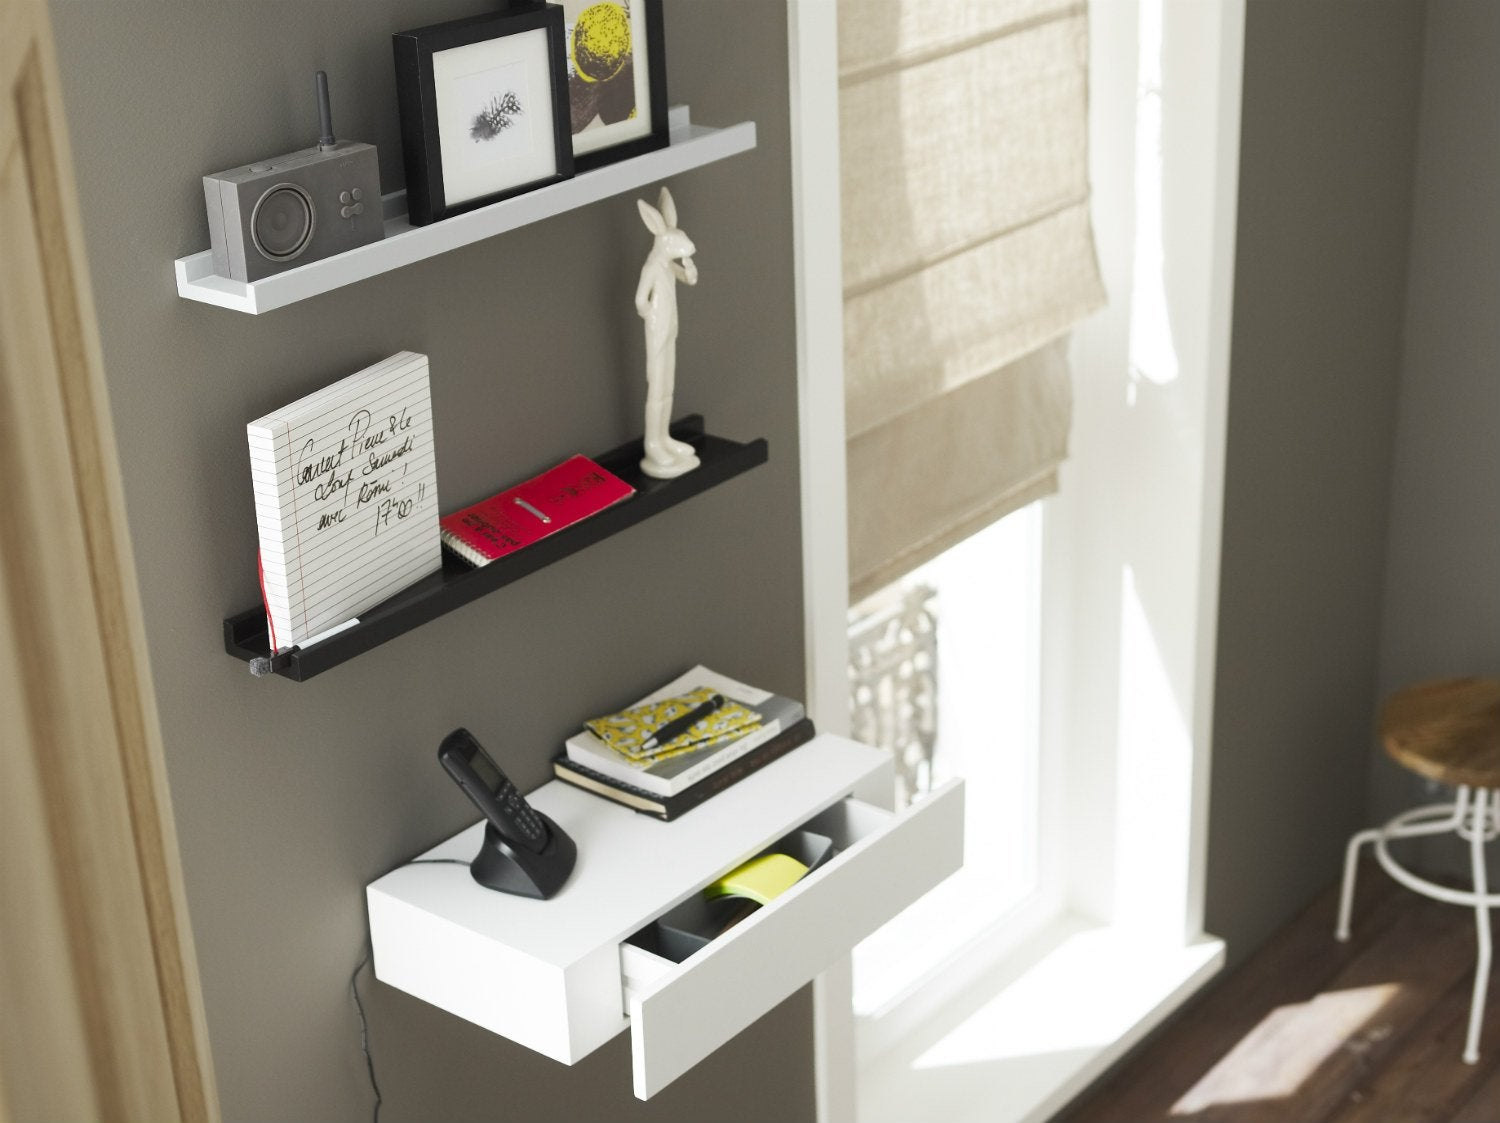 comment poser une tablette avec une fixation invisible leroy merlin. Black Bedroom Furniture Sets. Home Design Ideas